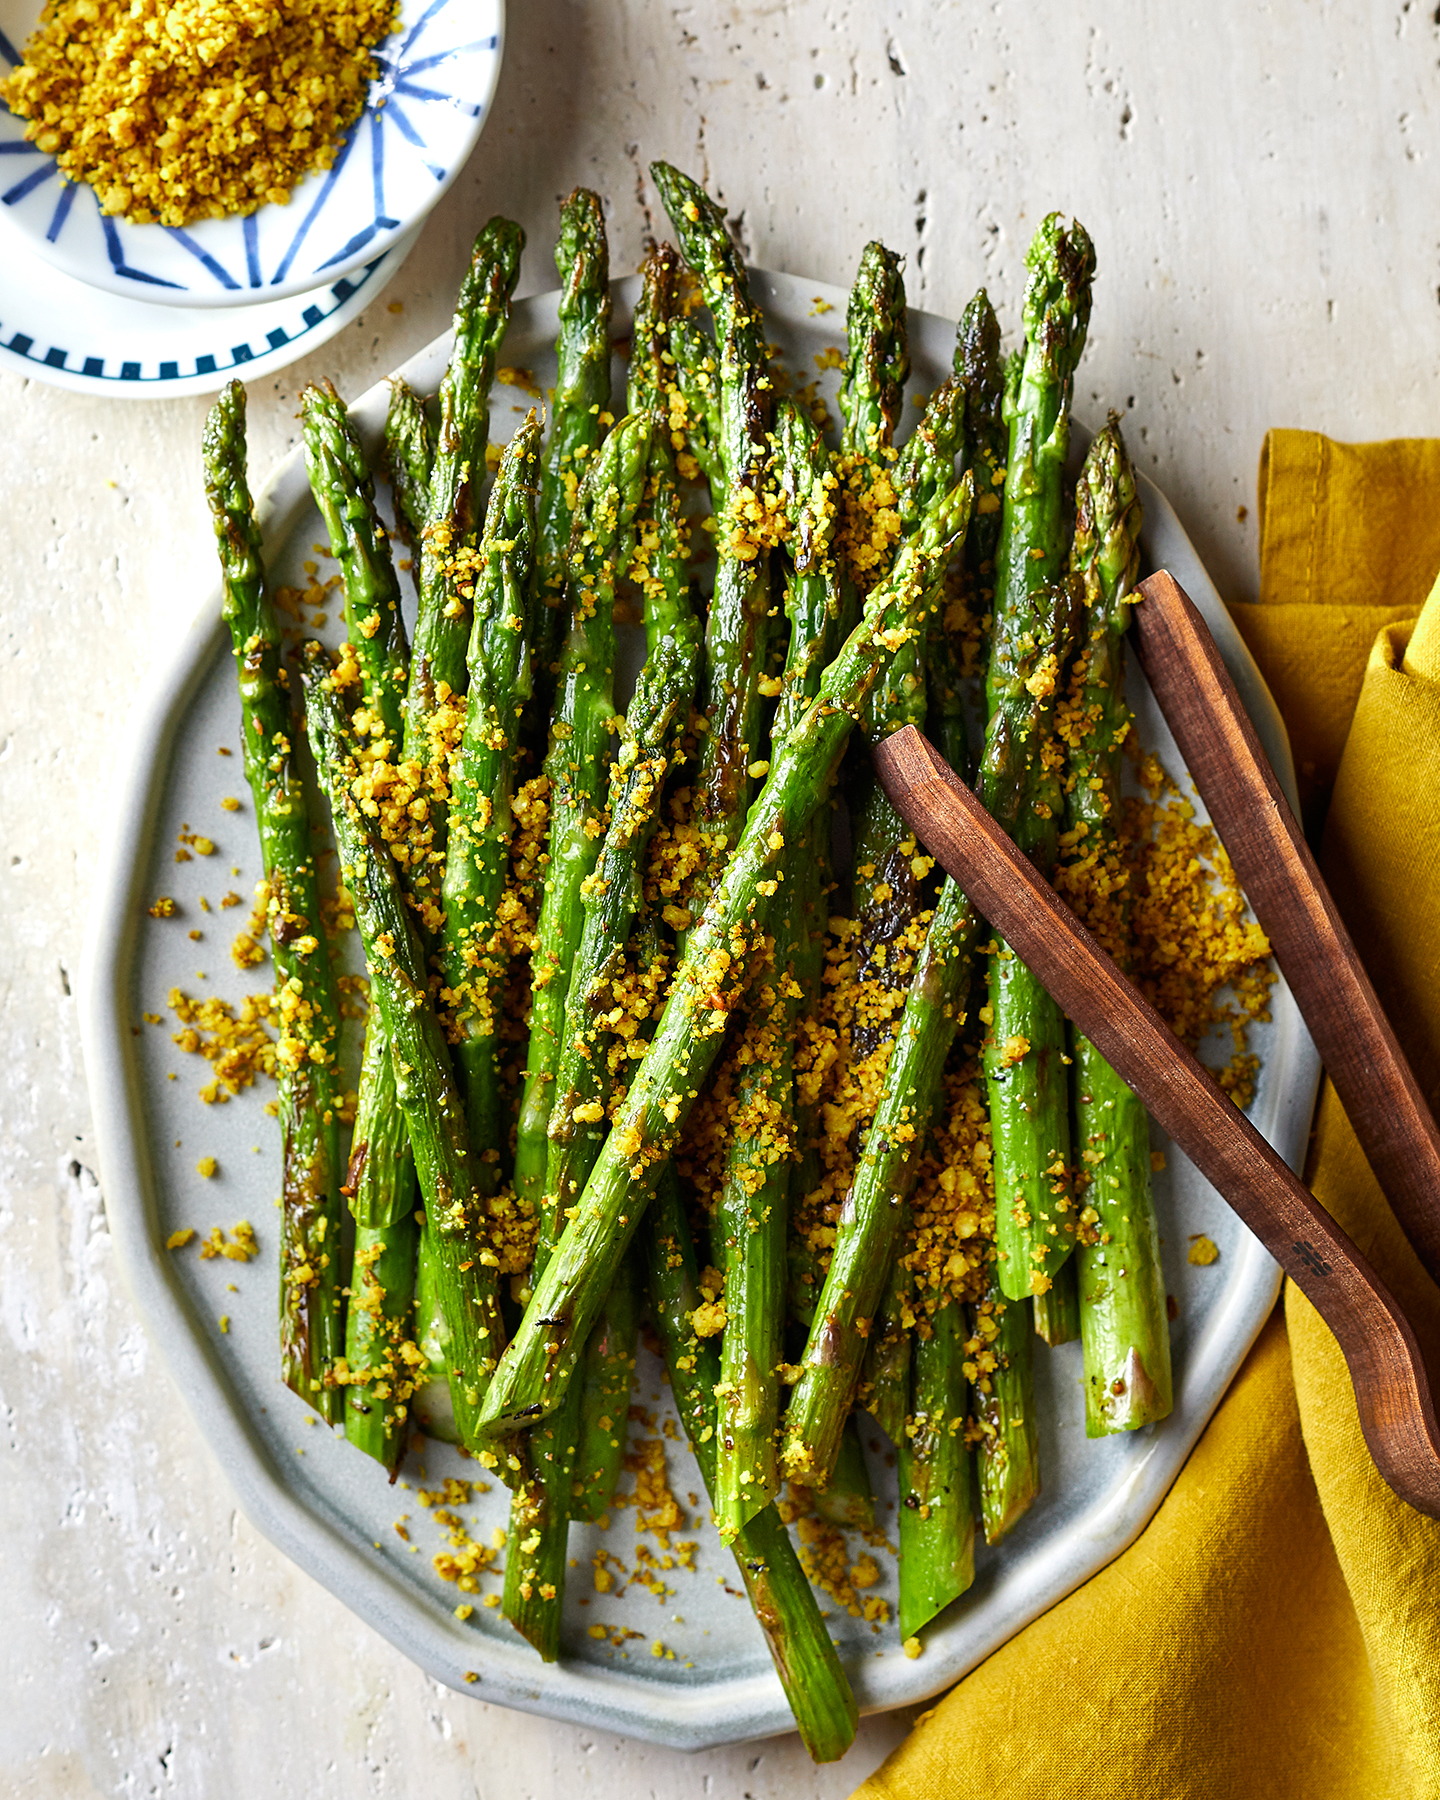 Roasted Asparagus With Flax Seed-Walnut Crumble